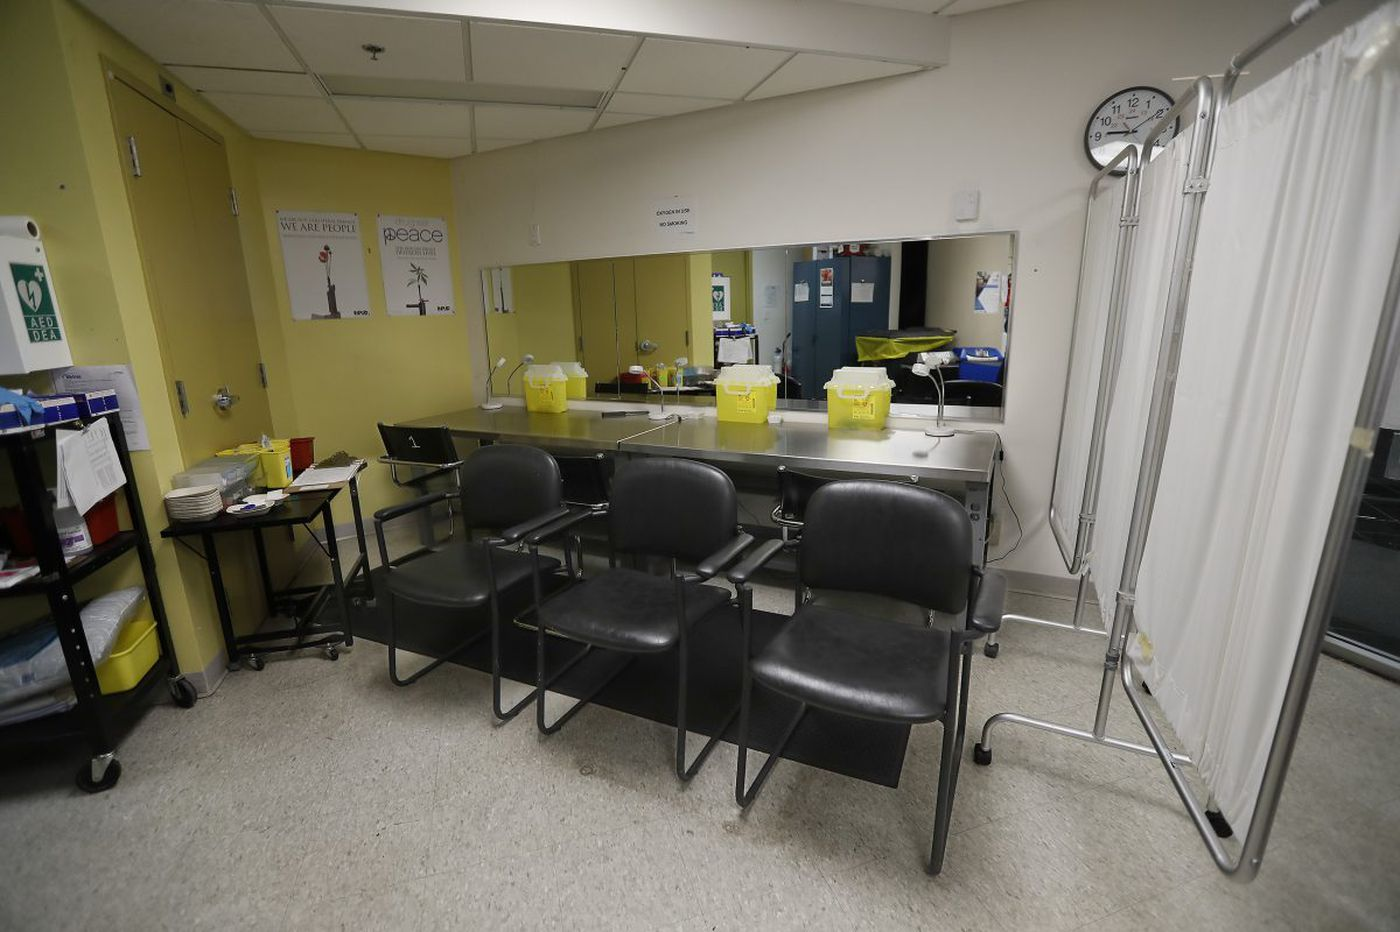 San Francisco announces plans to open safe injection sites